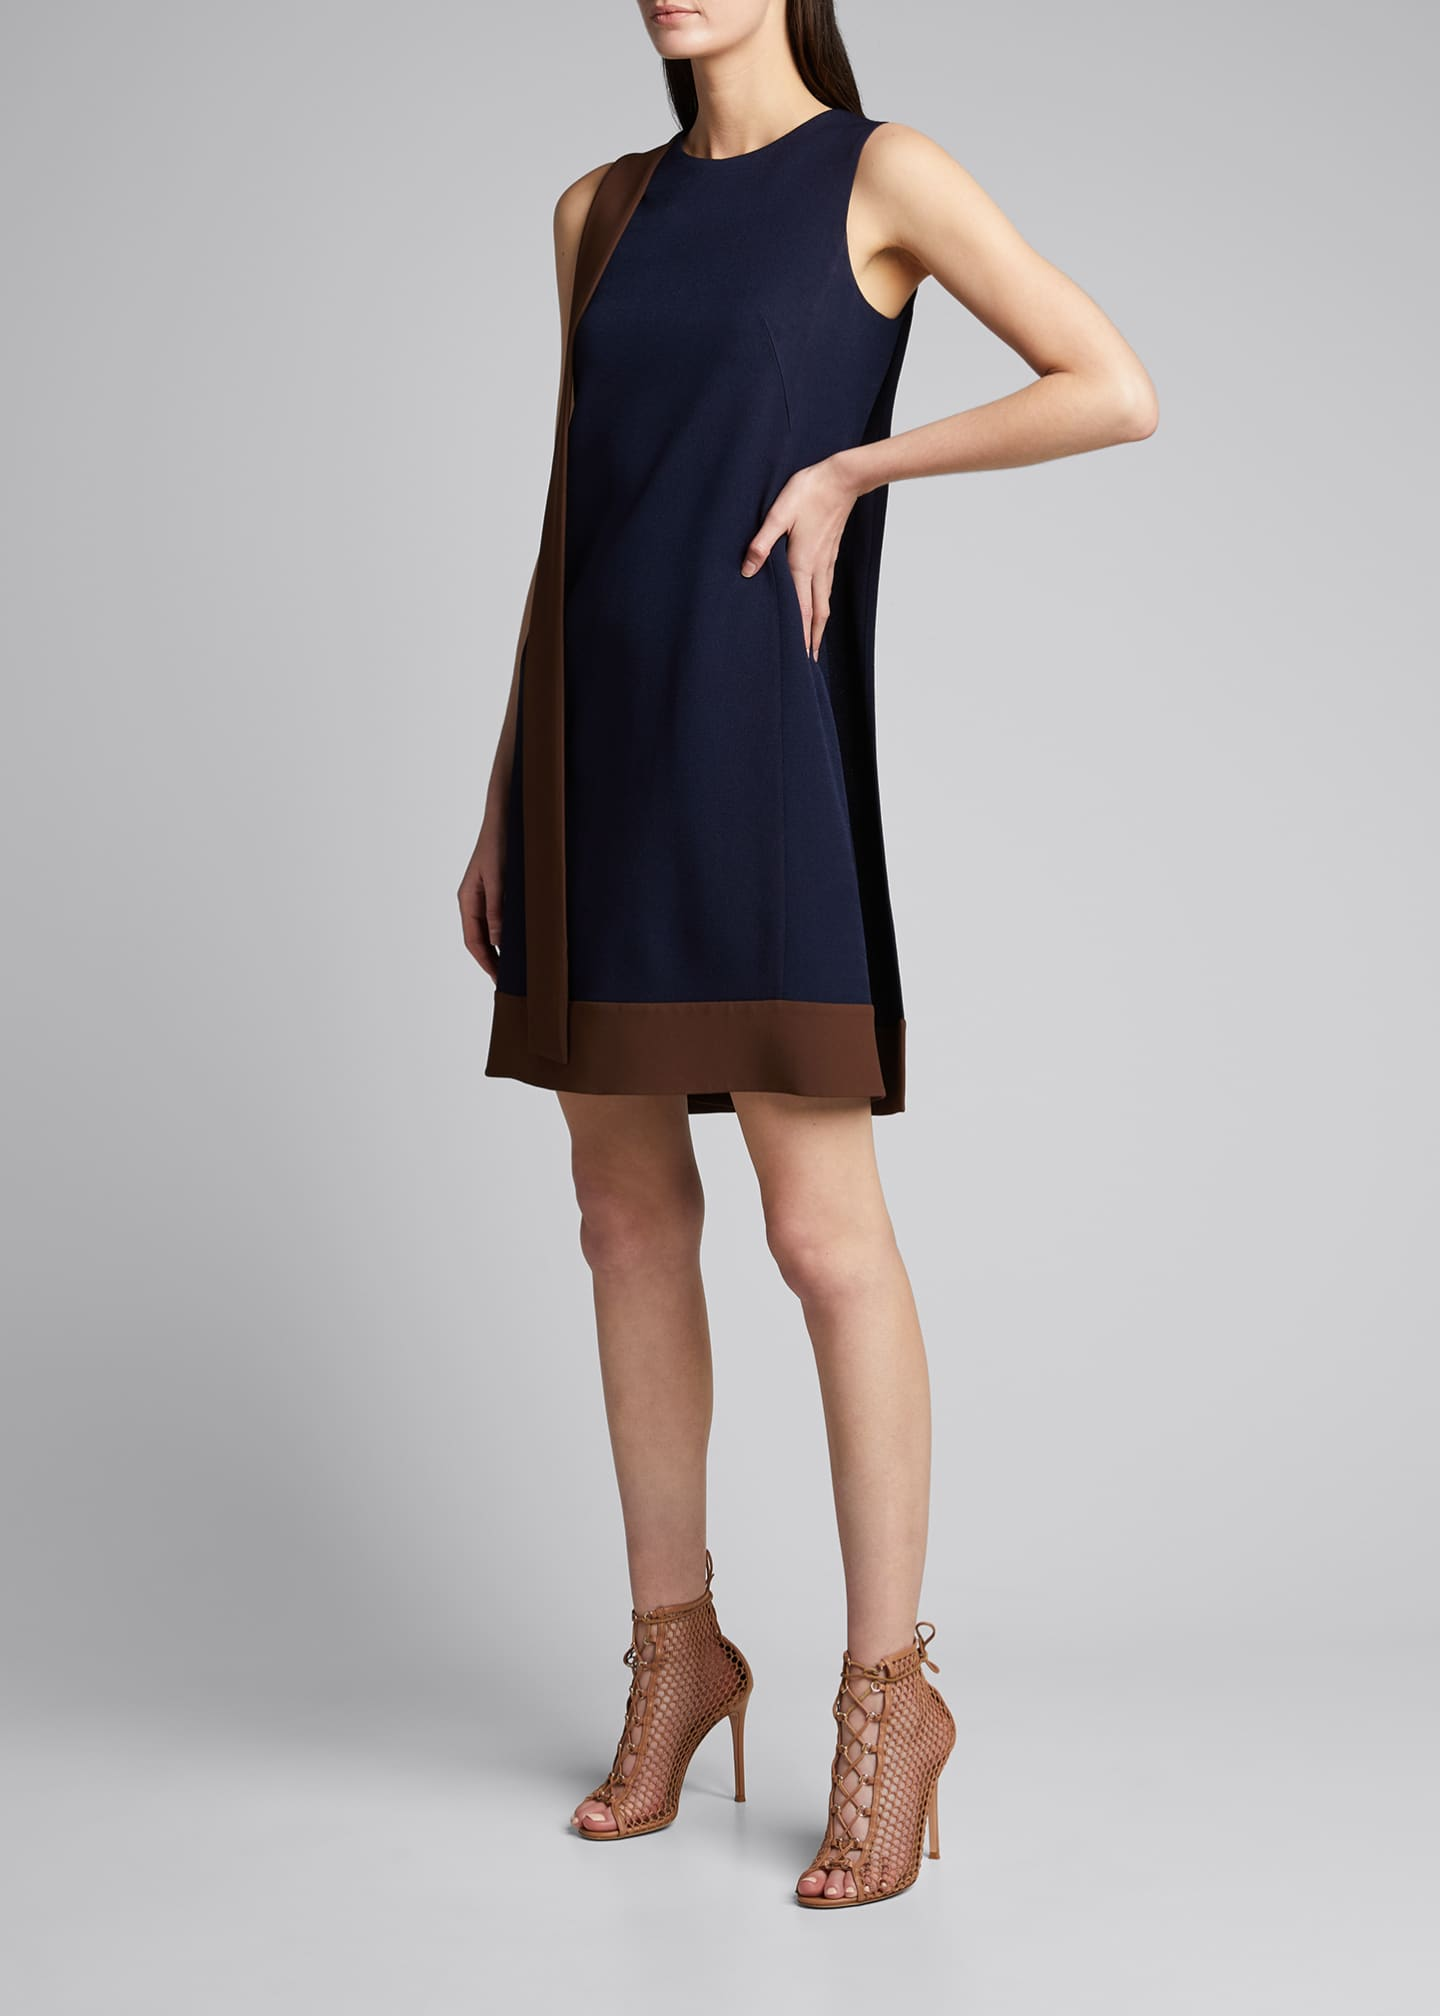 Image 1 of 5: Two-Tone Crepe Dress